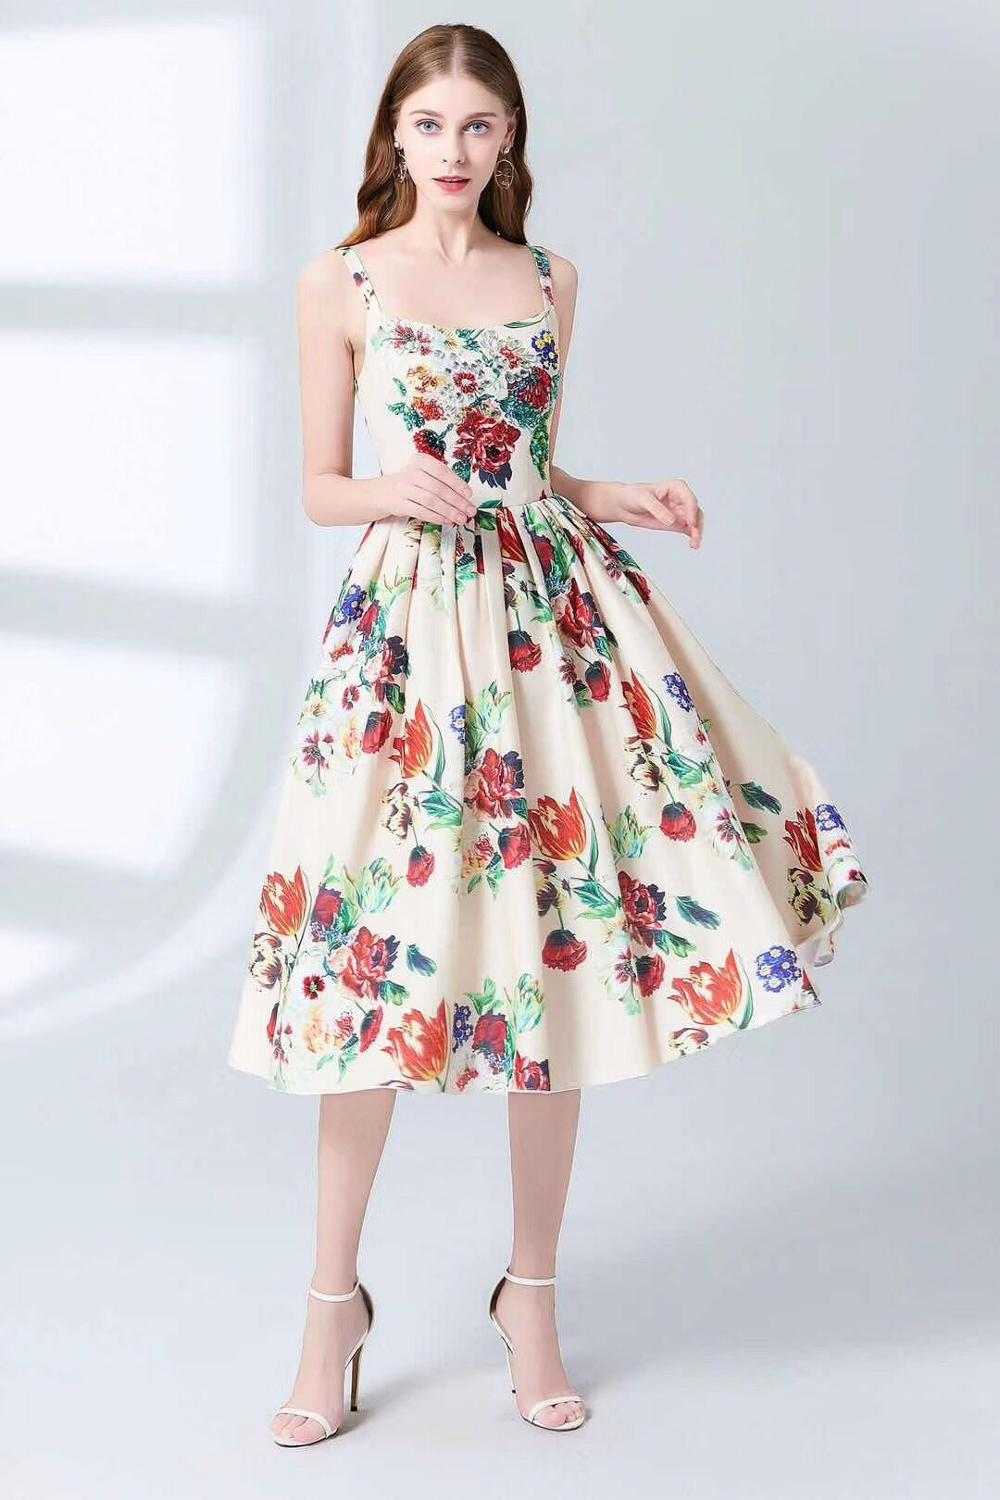 Brand High Quality 2019 Summer Women Clothes Sleeveless Sexy Spaghetti Strap Print Dress Empire Fashion Diamond Ball Gown Dress